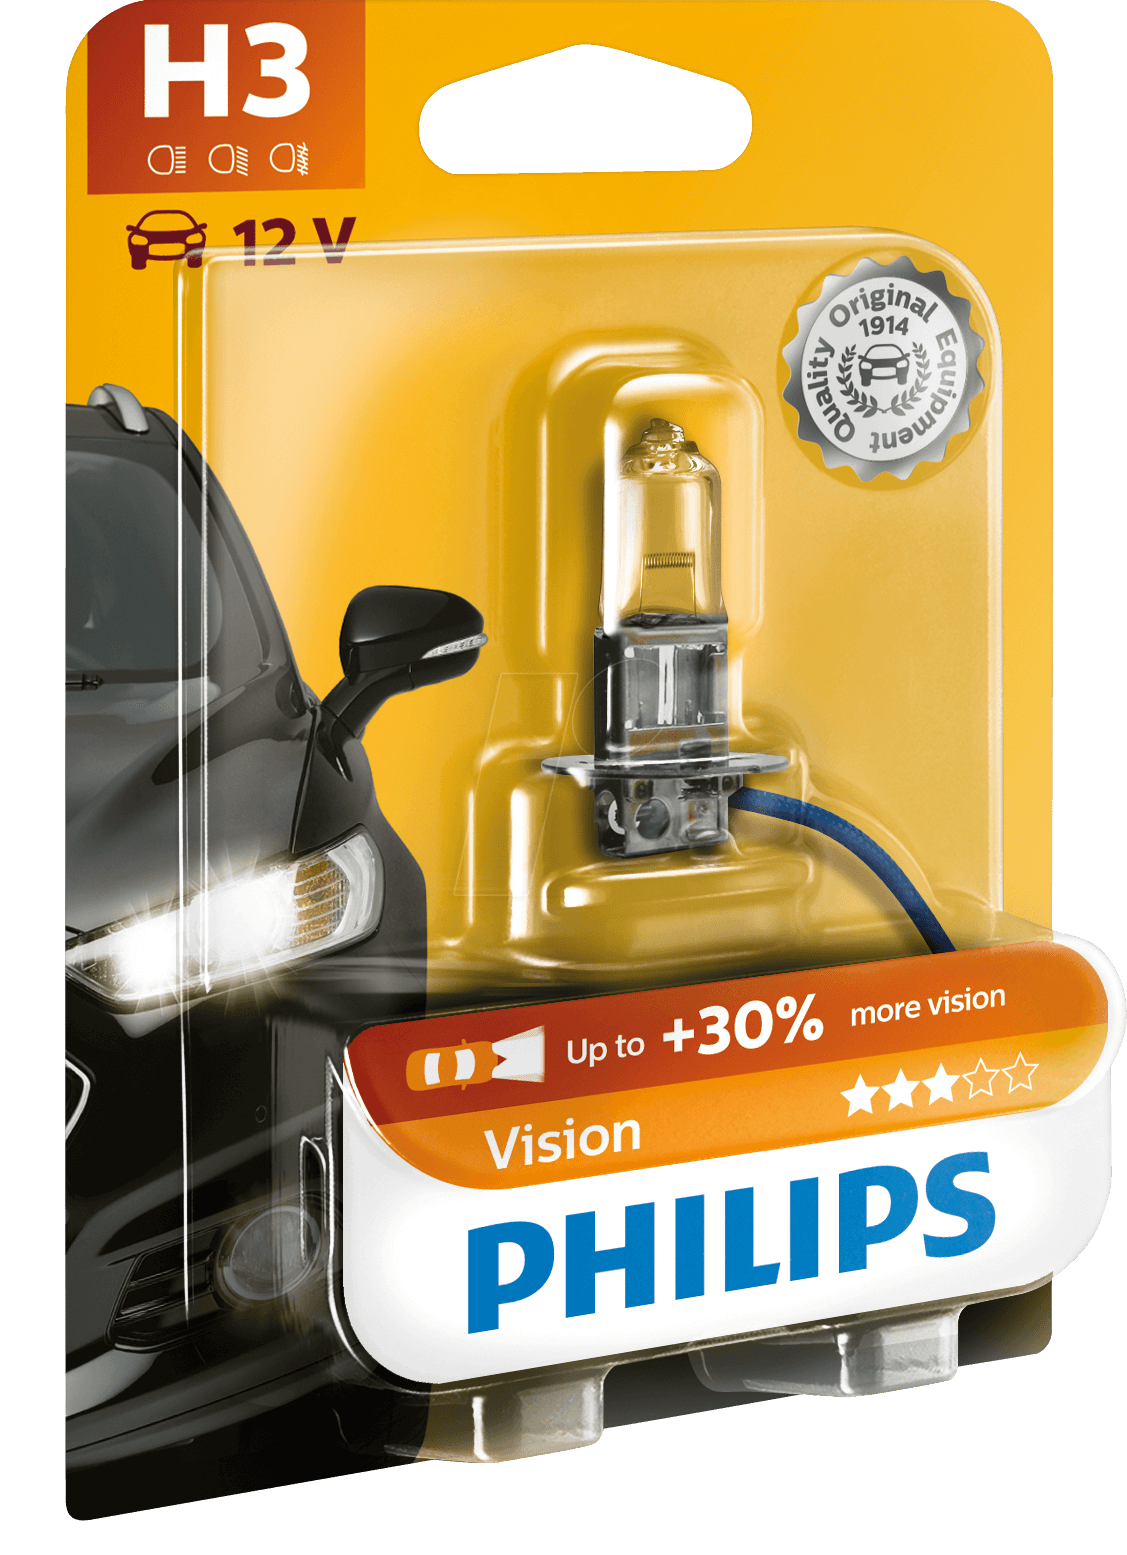 PHI H3 VISION - H3 headlight bulb Philips Vision